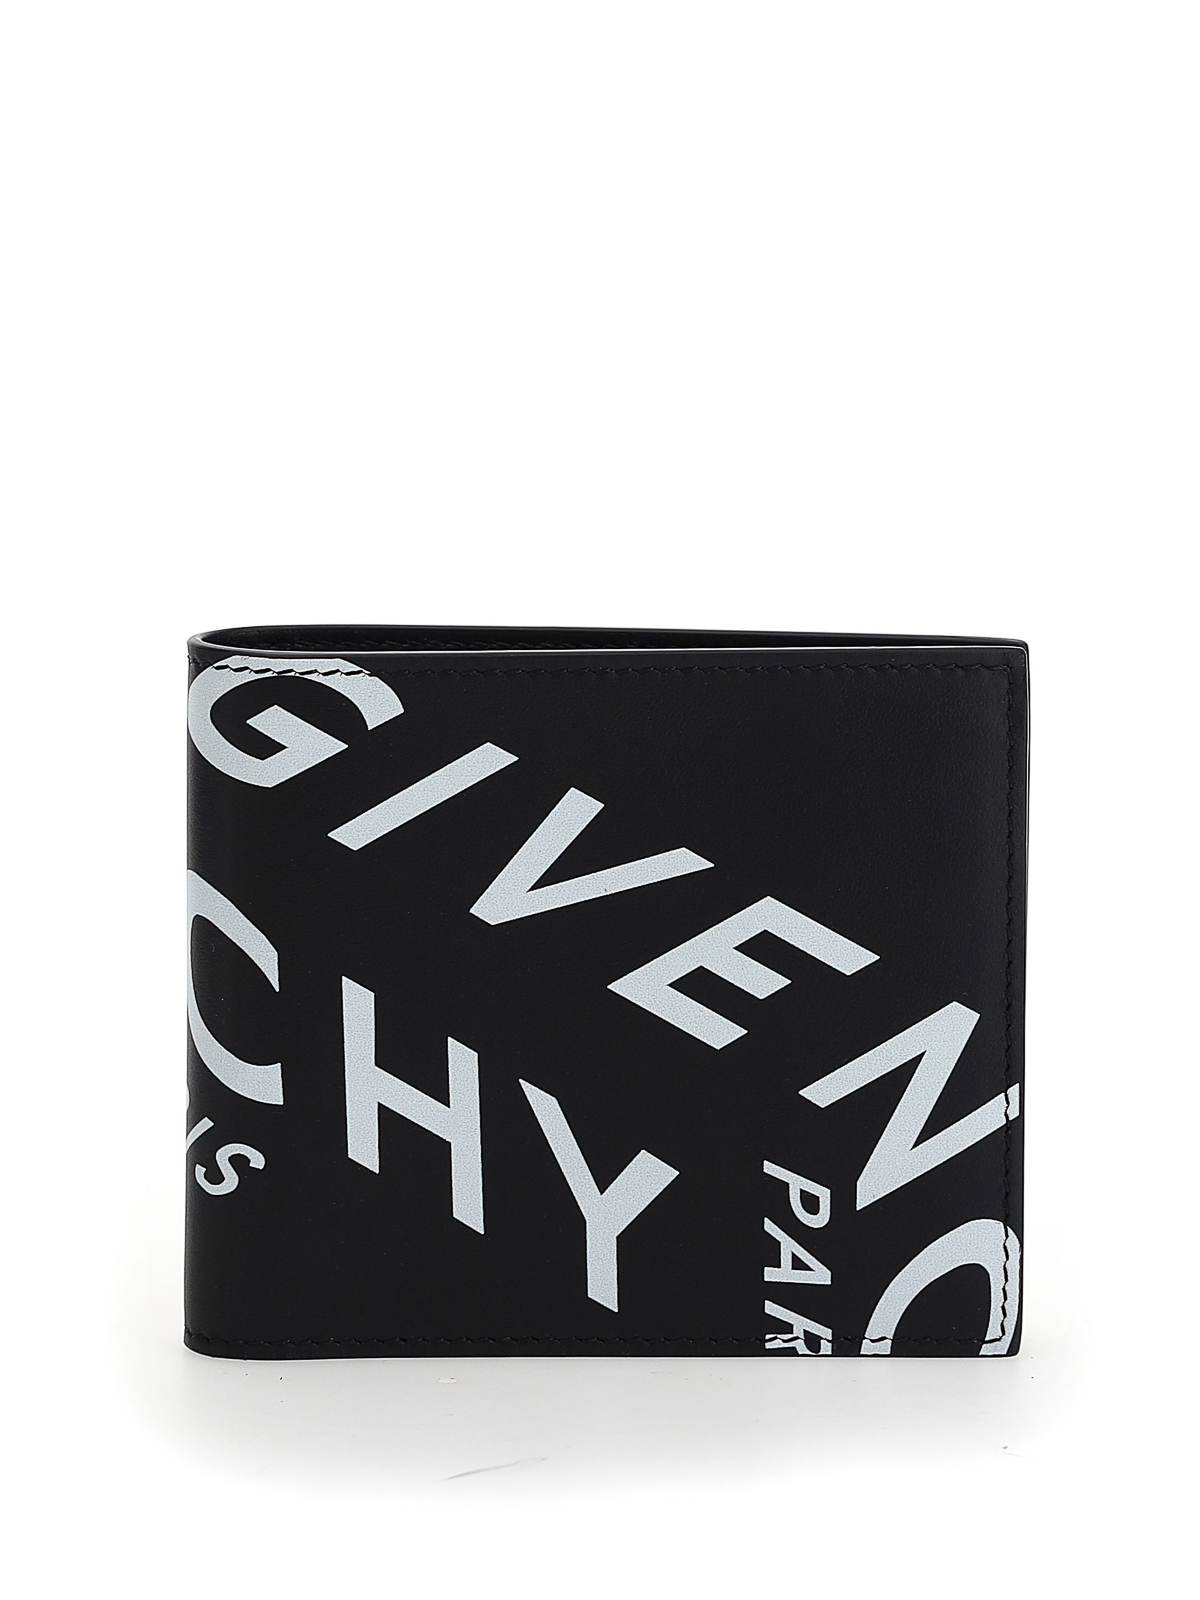 GIVENCHY REFRACTED LEATHER WALLET